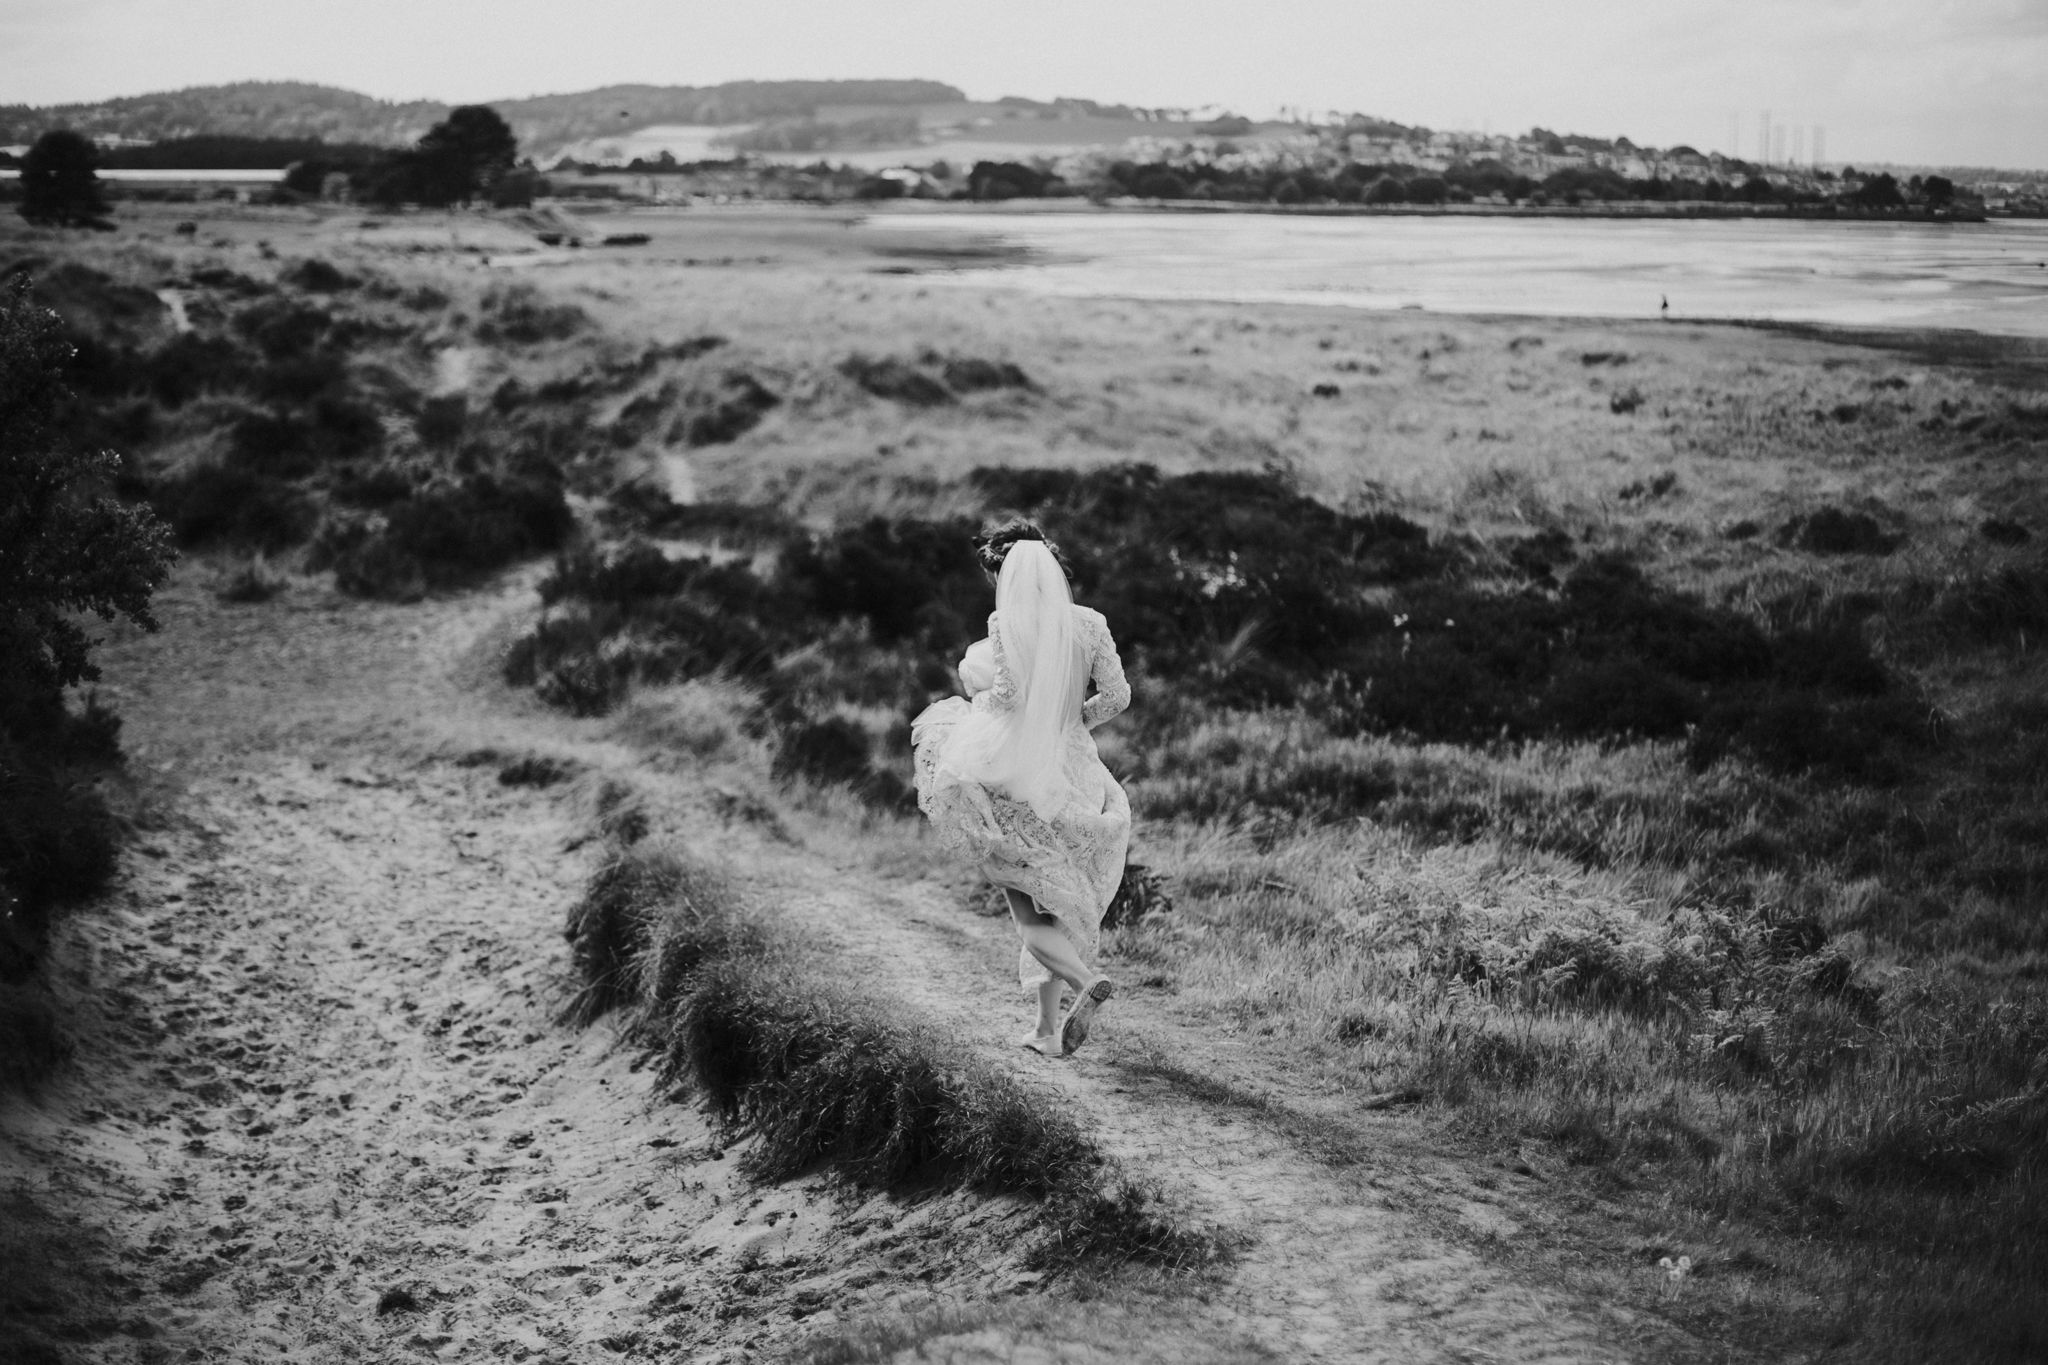 The running bride on the beach